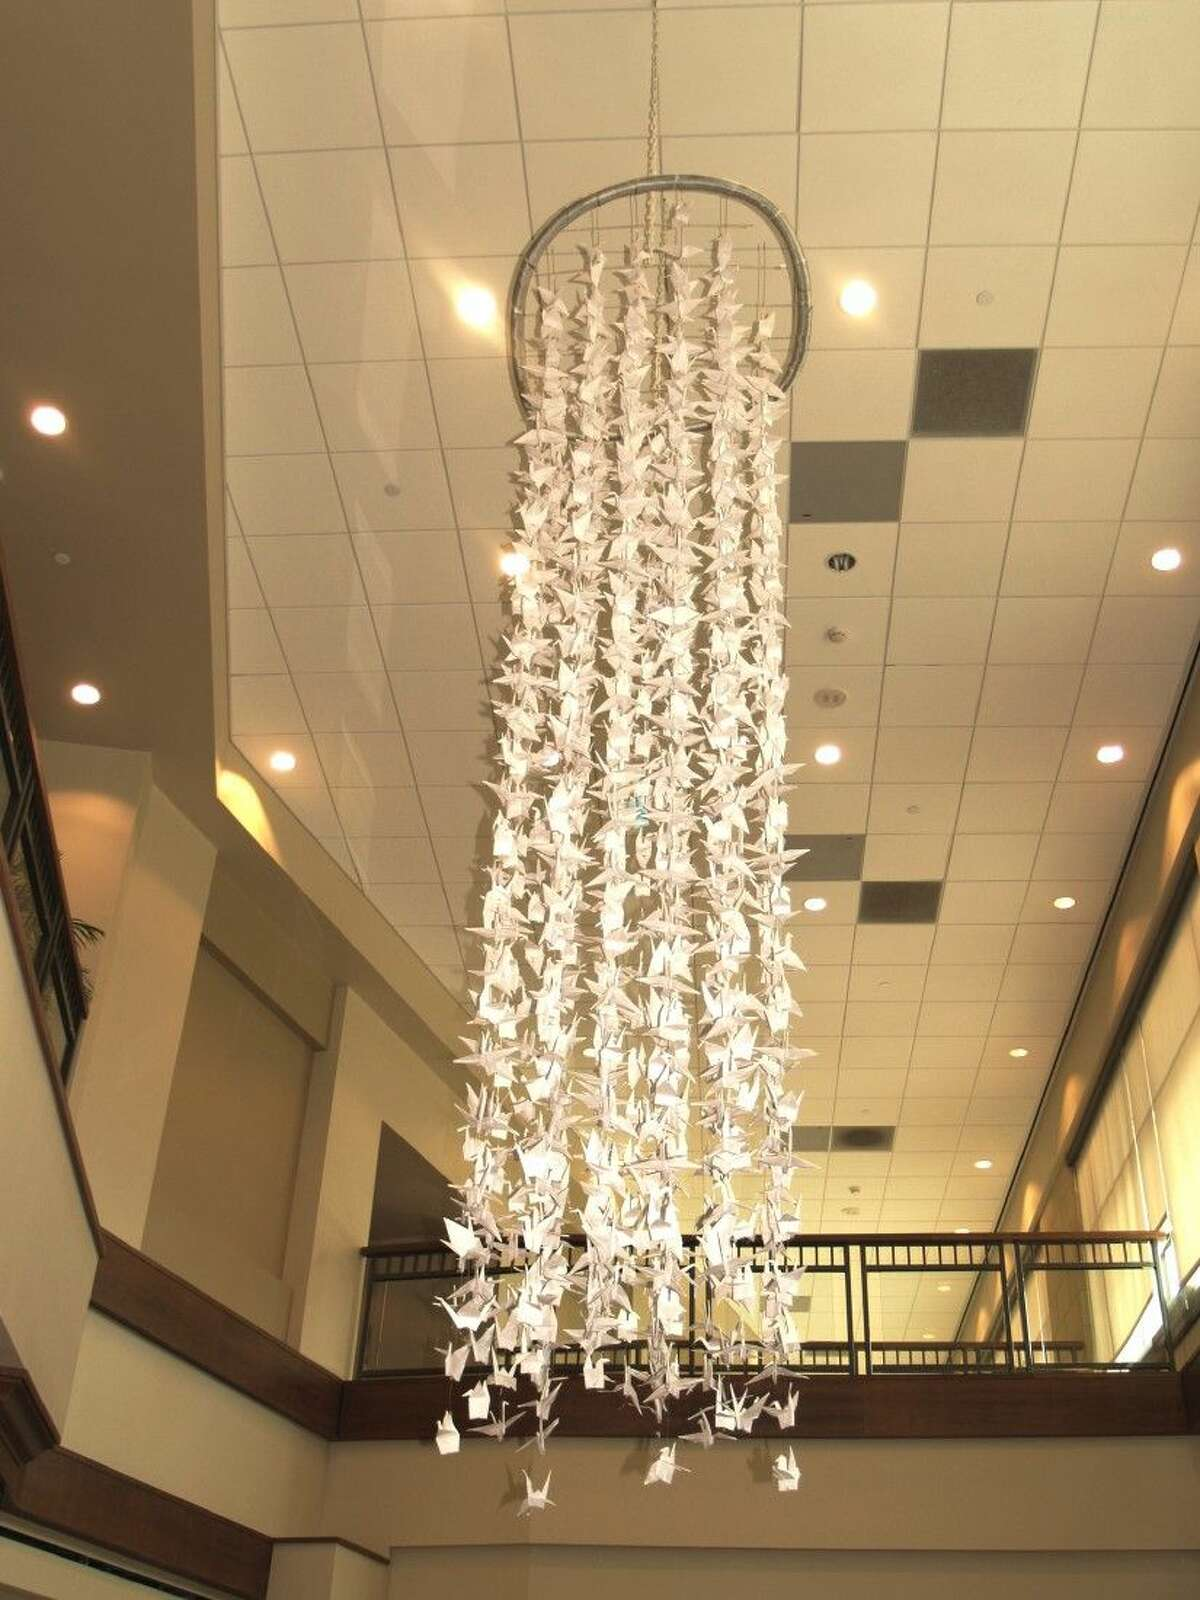 The 1,000 Cranes art installation in on display at CHI St. Luke's at The Vintage.